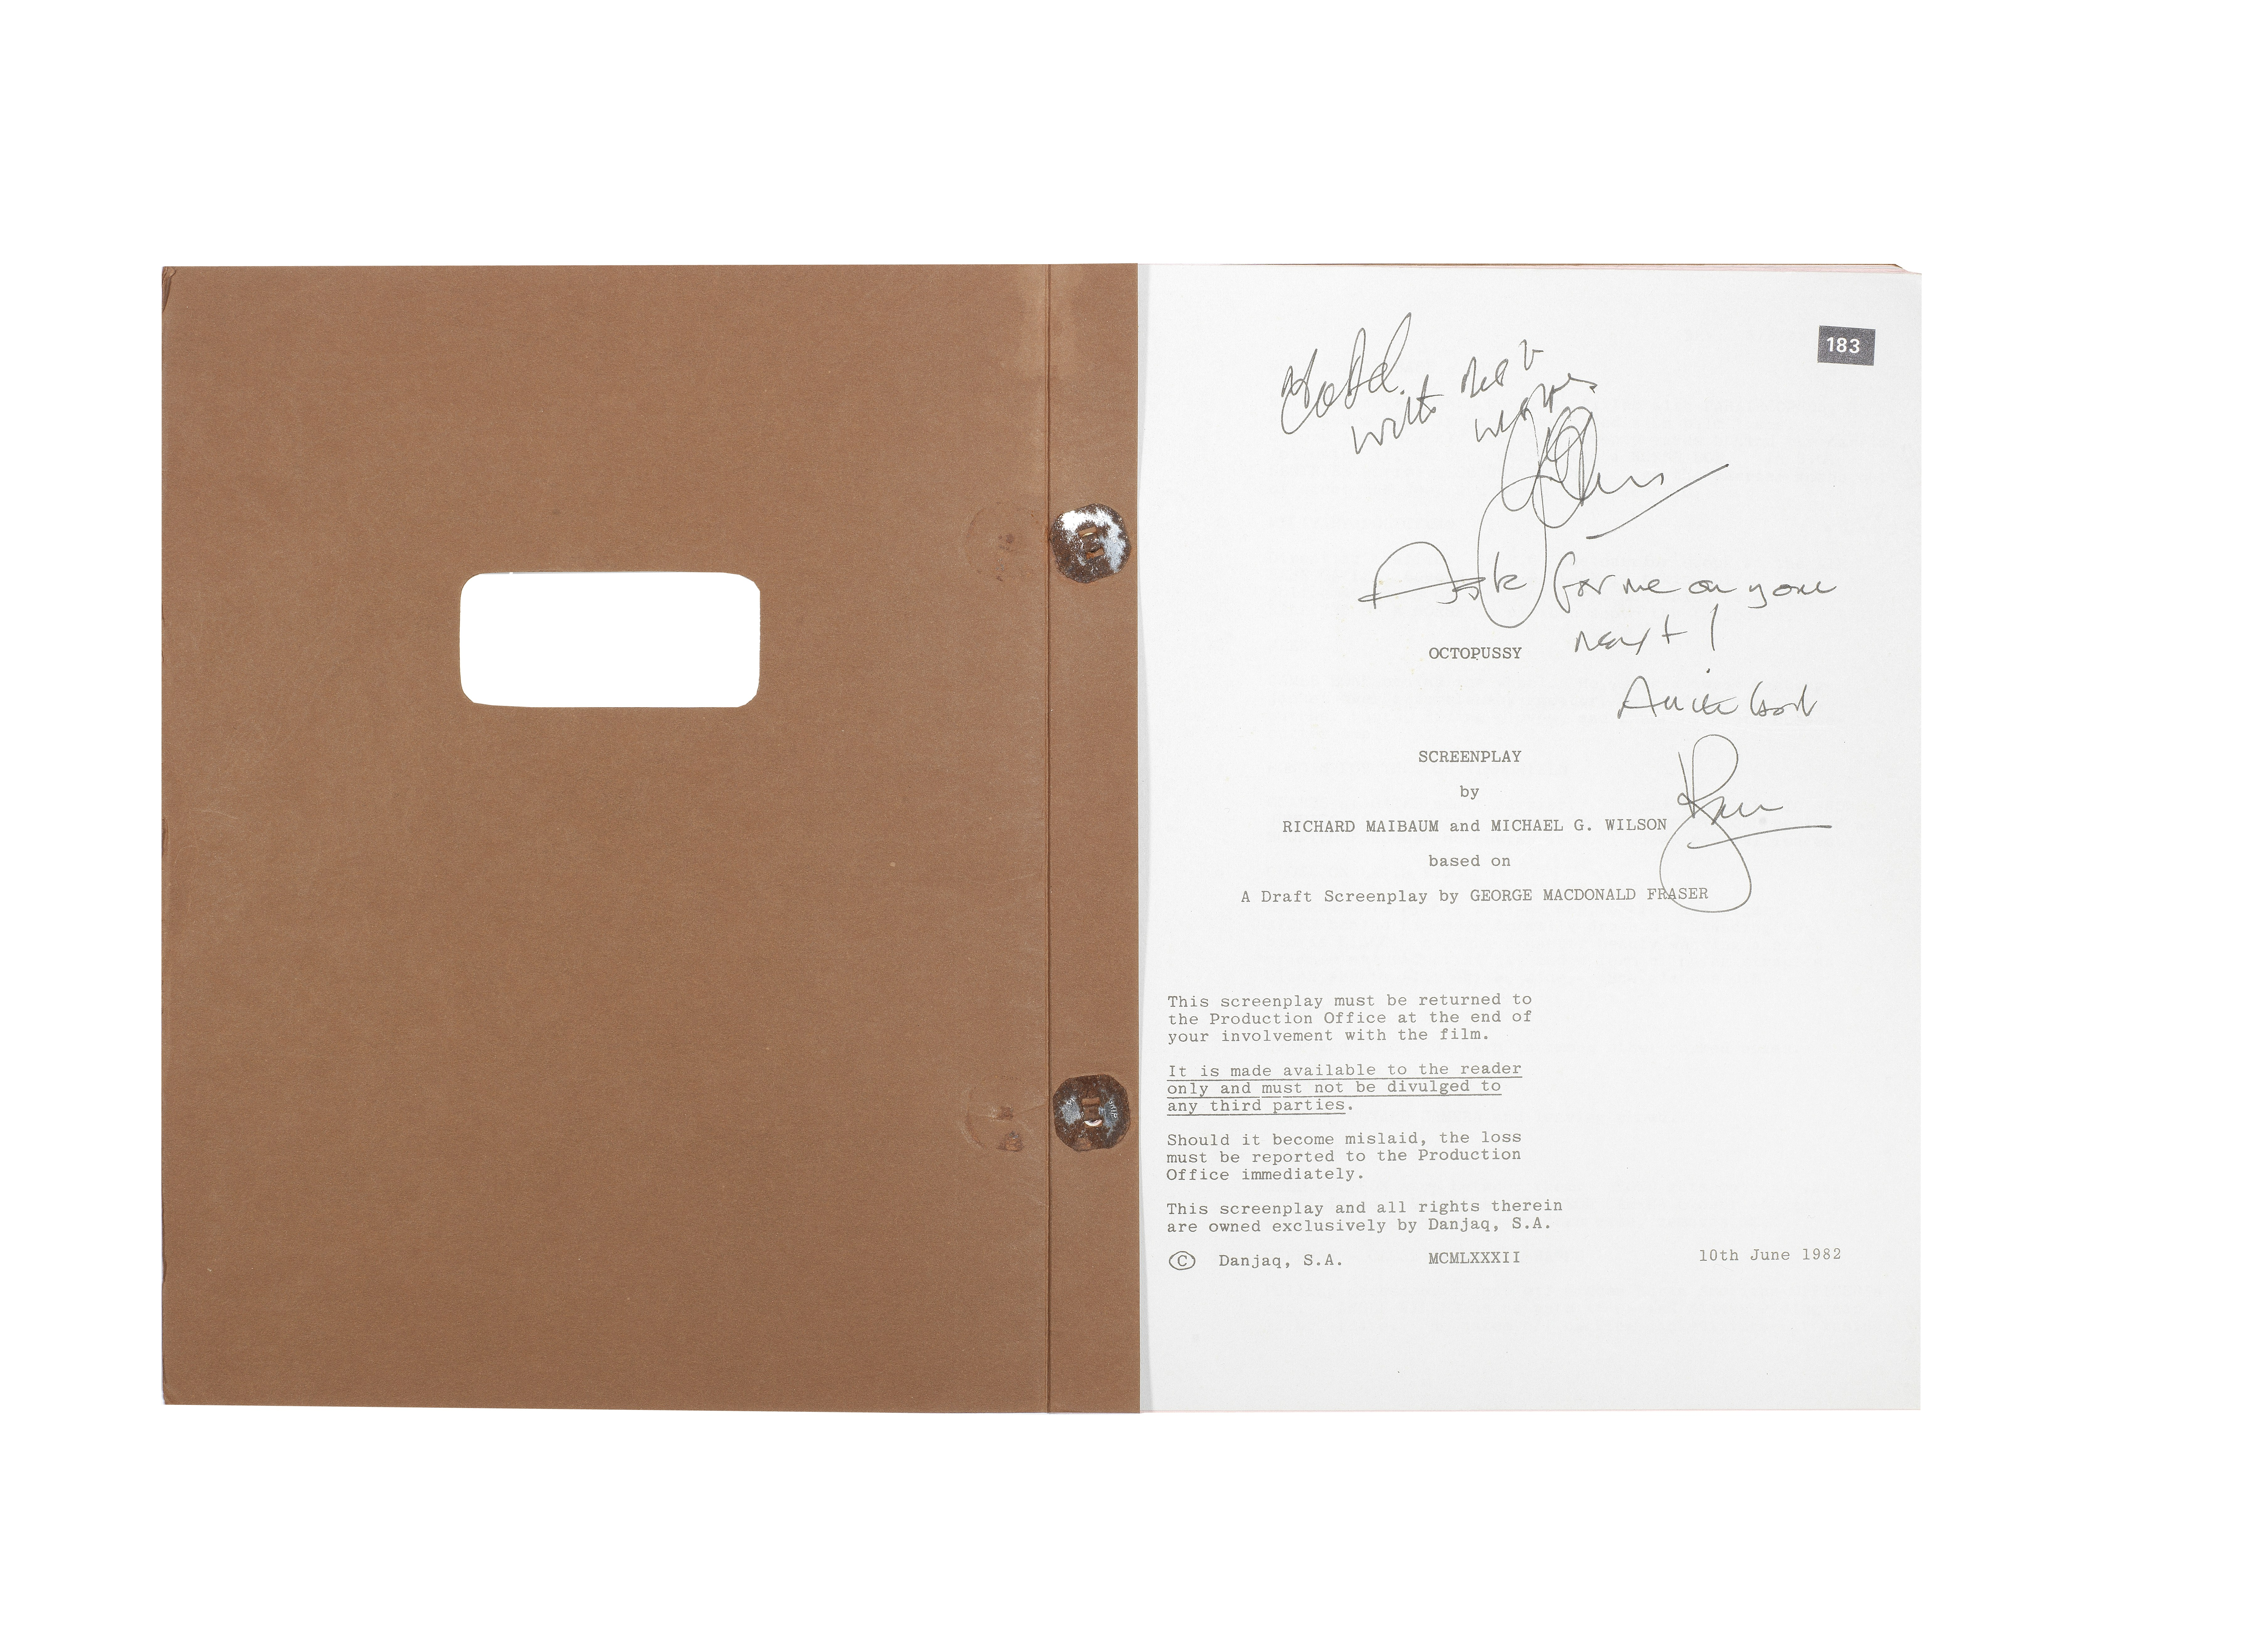 Lot 28 - James Bond: a screenplay script for Octopussy signed by Roger Moore, Eon Productions, 1983, 3